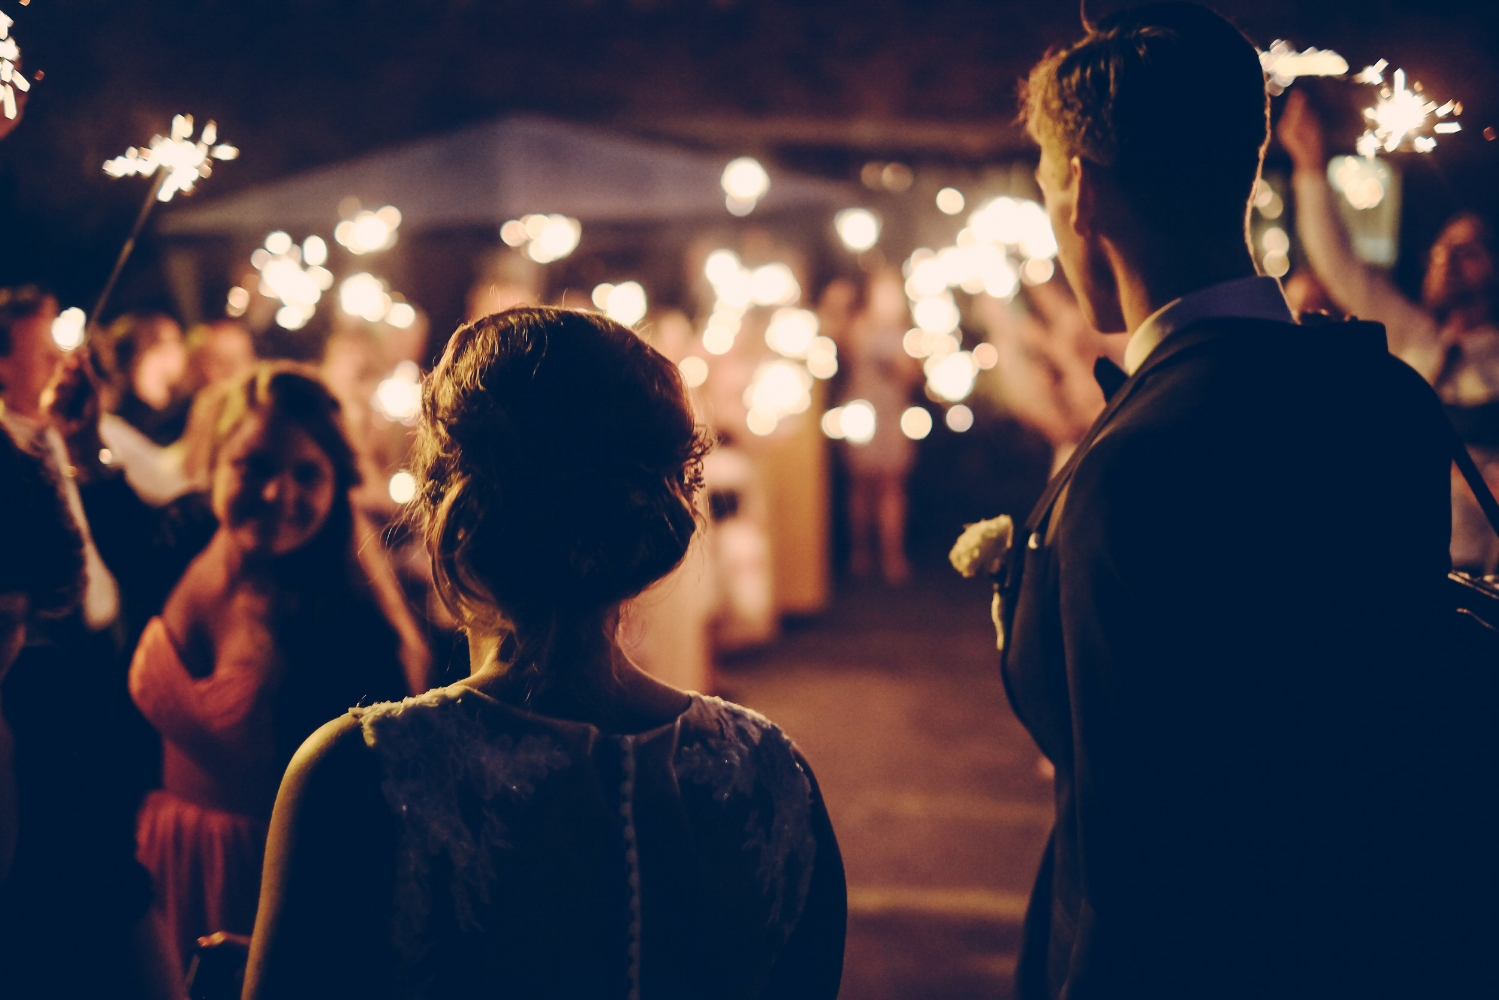 Bride and groom with sparklers at wedding reception